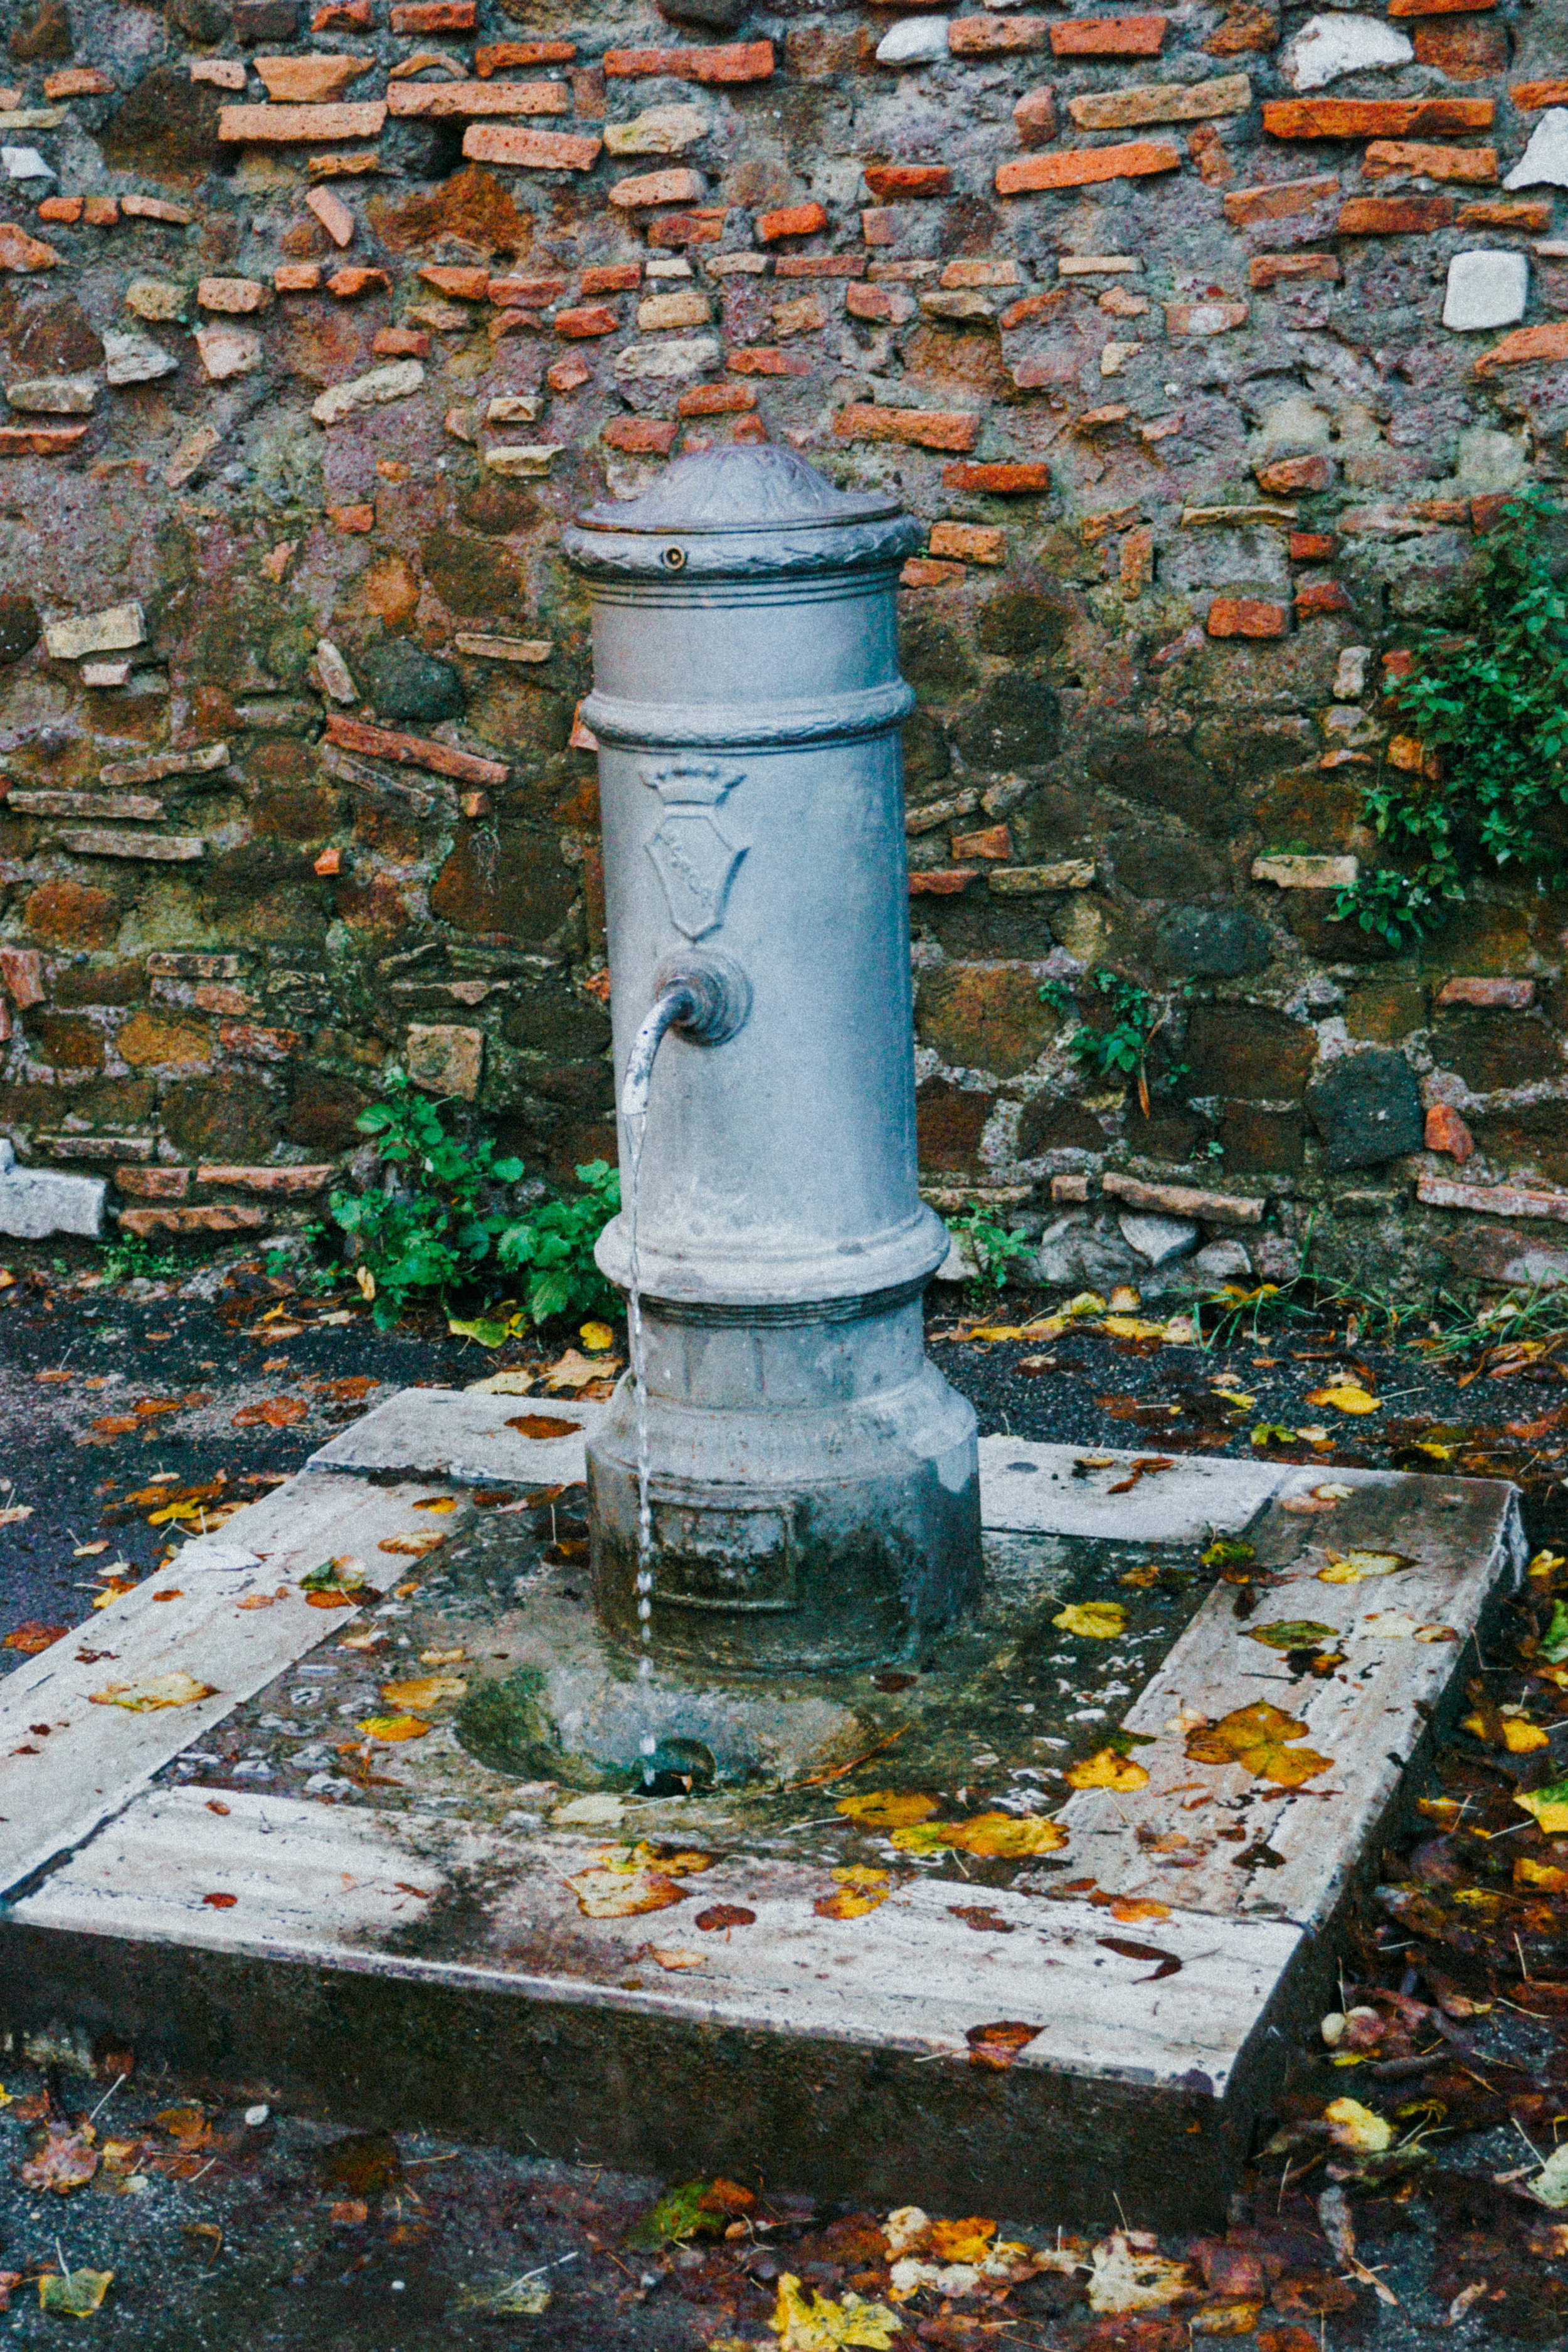 Italian water fountain. Clean and fresh water. Plentiful around the cities. Carry a water bottle and never pay for water.